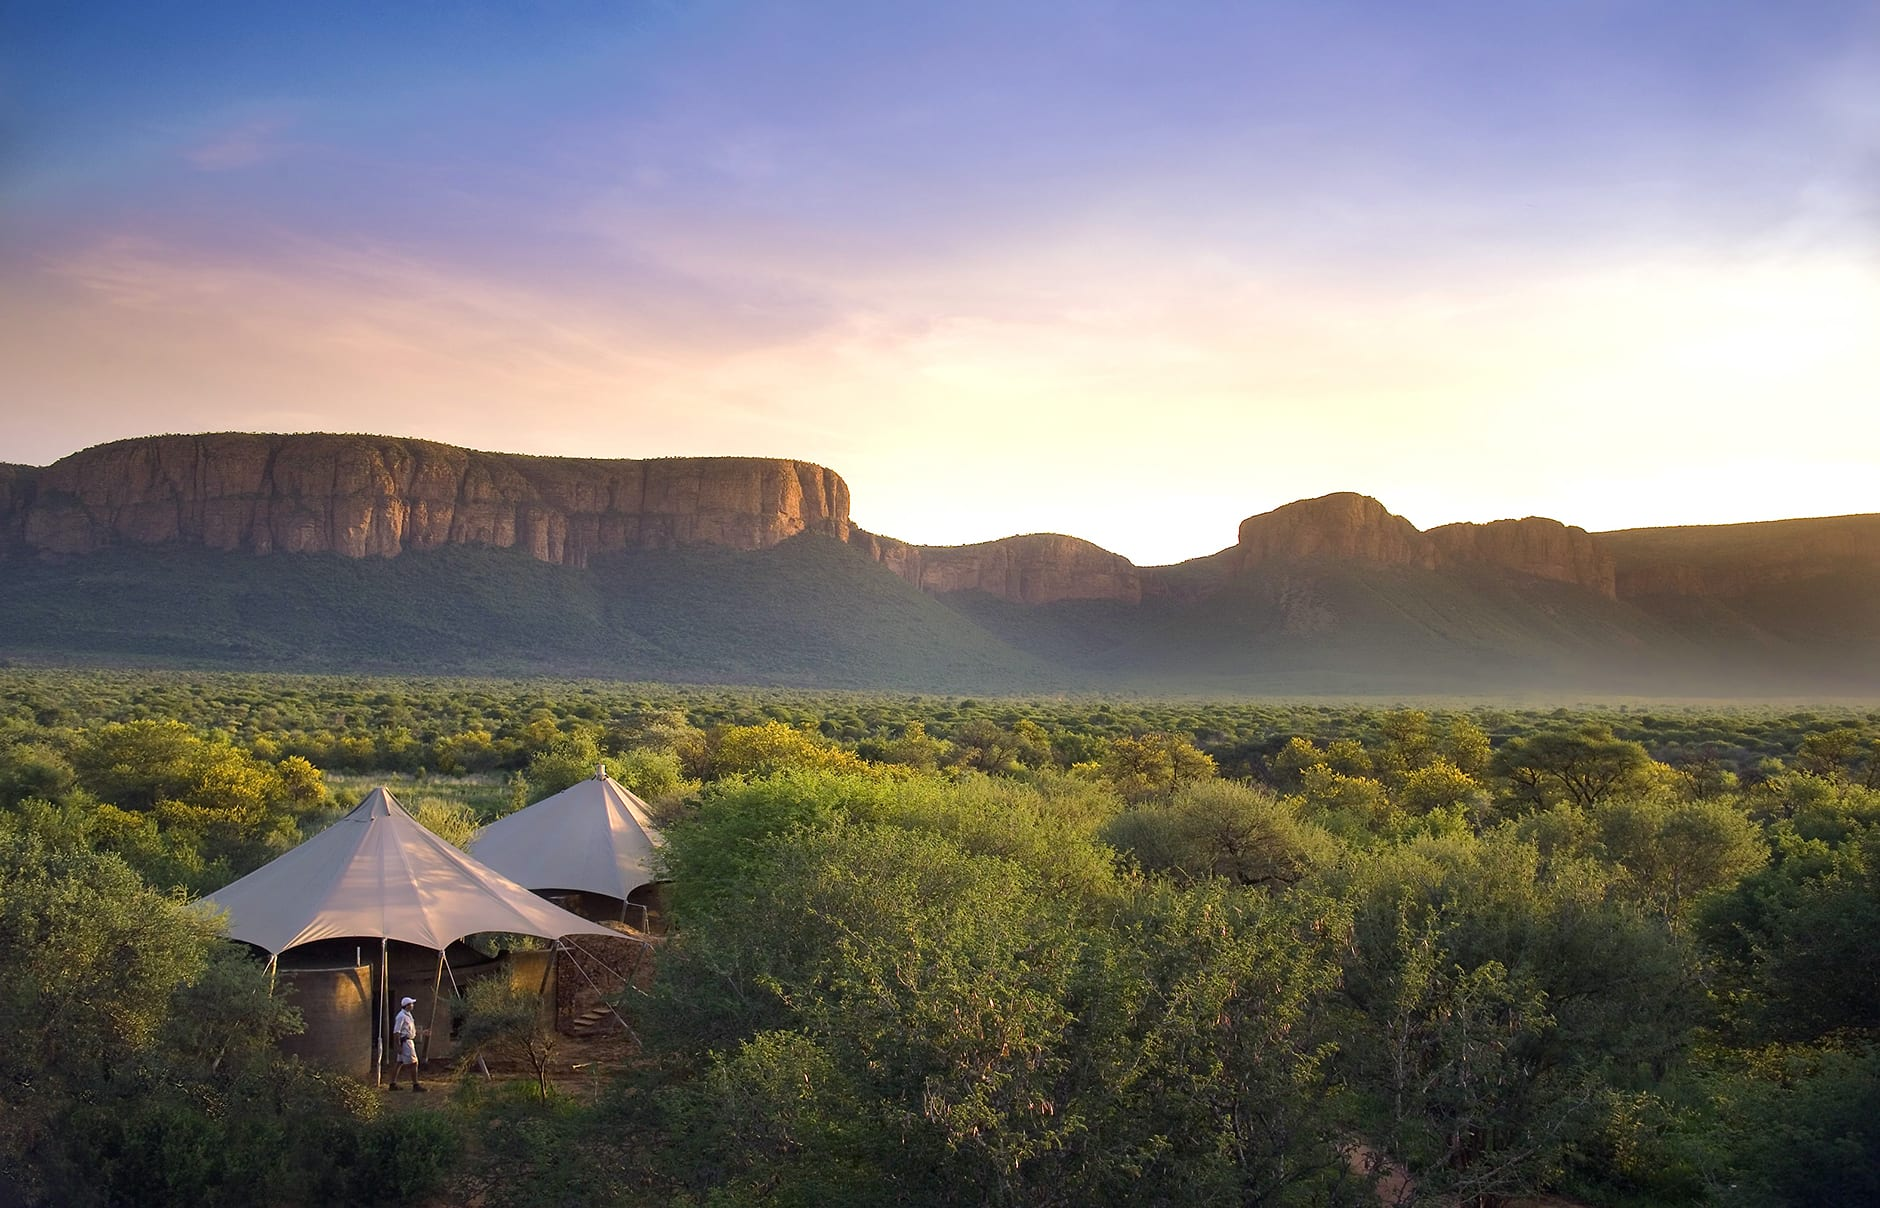 Lodge backdrop. Marataba Safari Company, South Africa. © Marataba